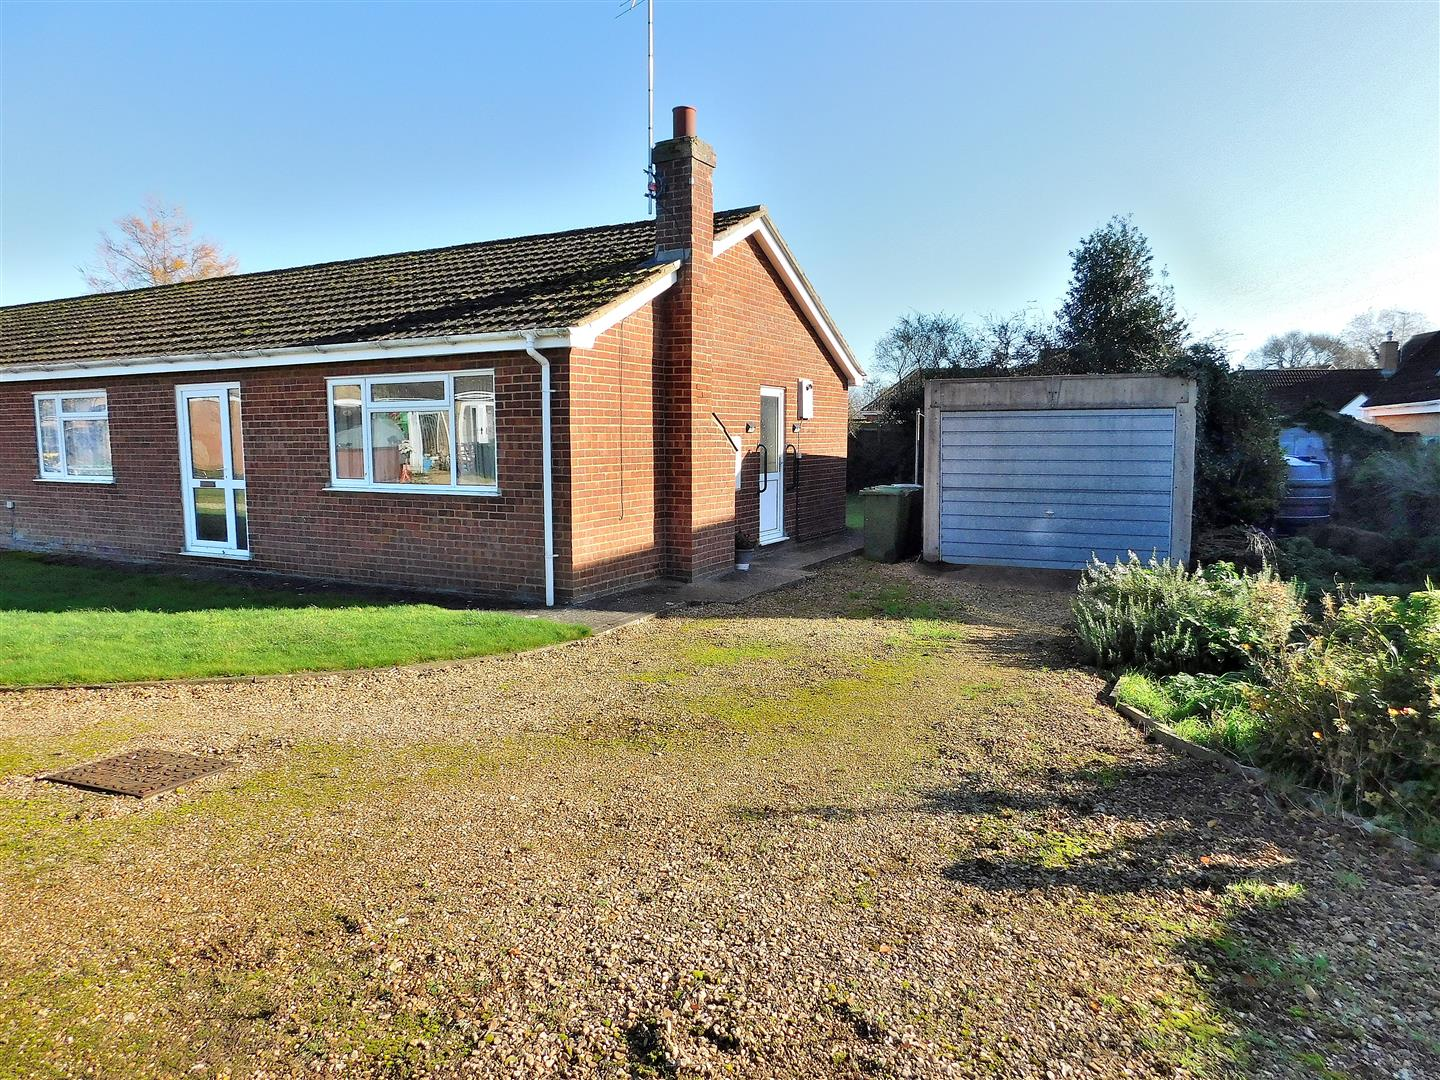 2 bed semi-detached bungalow for sale in The Saltings, King's Lynn, PE34